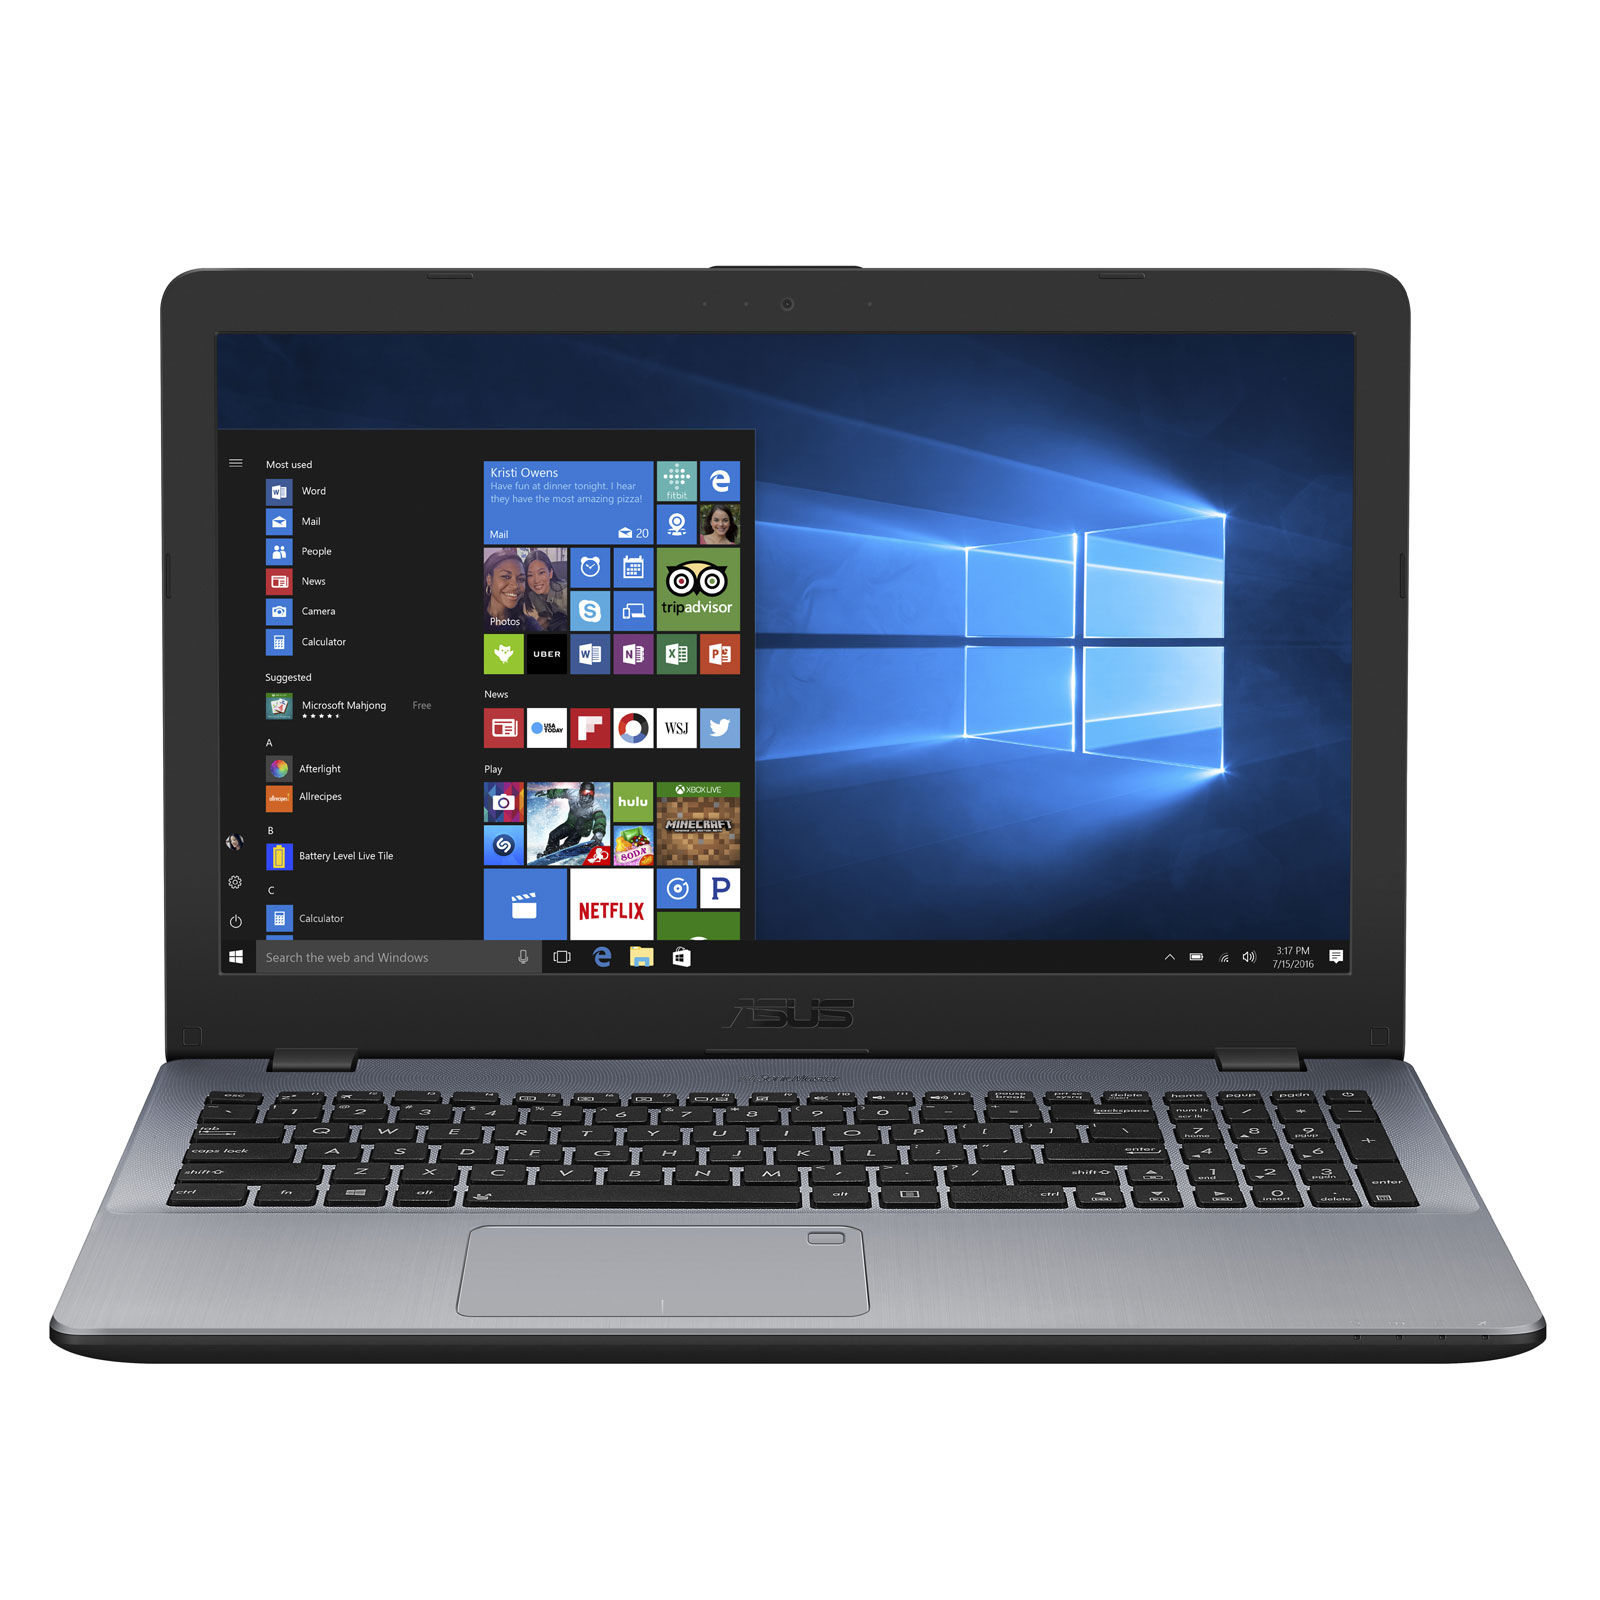 ASUS P1501UF DM205R Intel Core I7 8550U 8 Go SSD 256 156 LED Full HD NVIDIA GeForce MX130 Graveur DVD Wi Fi AC Bluetooth Webcam Windows 10